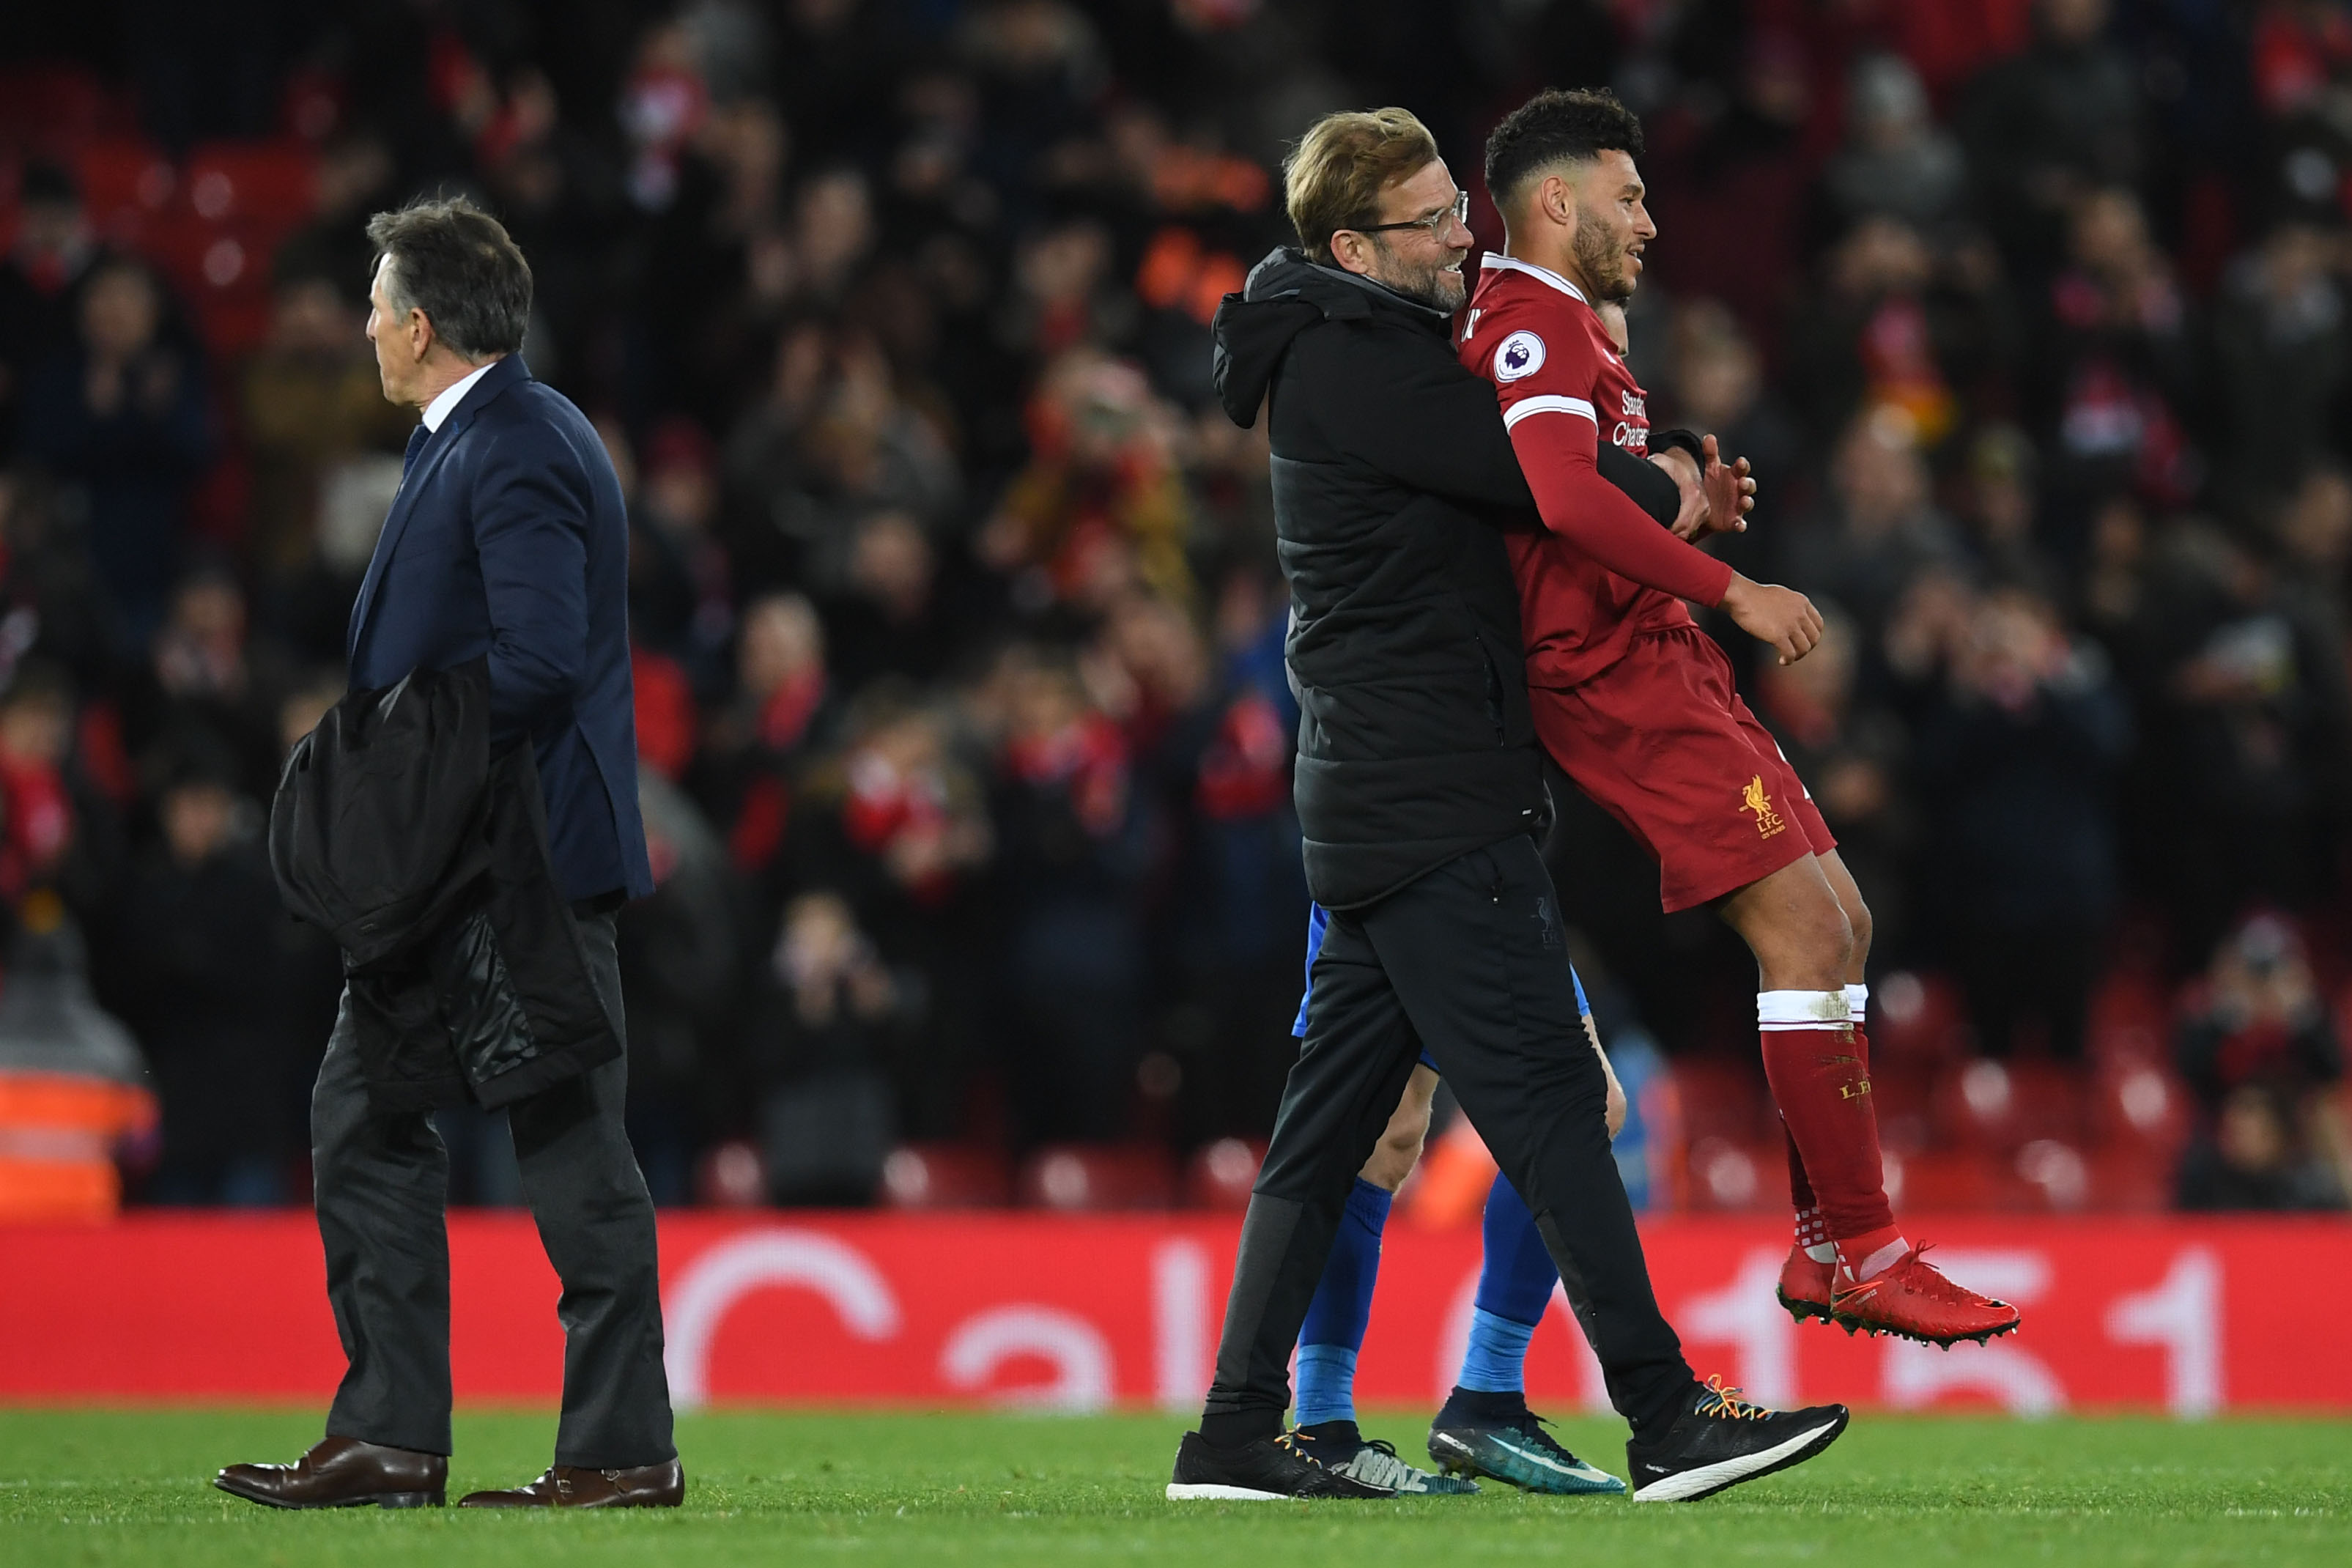 Liverpool's German manager Jurgen Klopp (C) congratulates Liverpool's English midfielder Alex Oxlade-Chamberlain (R) as Leicester City's French manager Claude Puel walks after the English Premier League football match between Liverpool and Leicester at Anfield in Liverpool, north west England on December 30, 2017. / AFP PHOTO / Paul ELLIS / RESTRICTED TO EDITORIAL USE. No use with unauthorized audio, video, data, fixture lists, club/league logos or 'live' services. Online in-match use limited to 75 images, no video emulation. No use in betting, games or single club/league/player publications. / (Photo credit should read PAUL ELLIS/AFP/Getty Images)